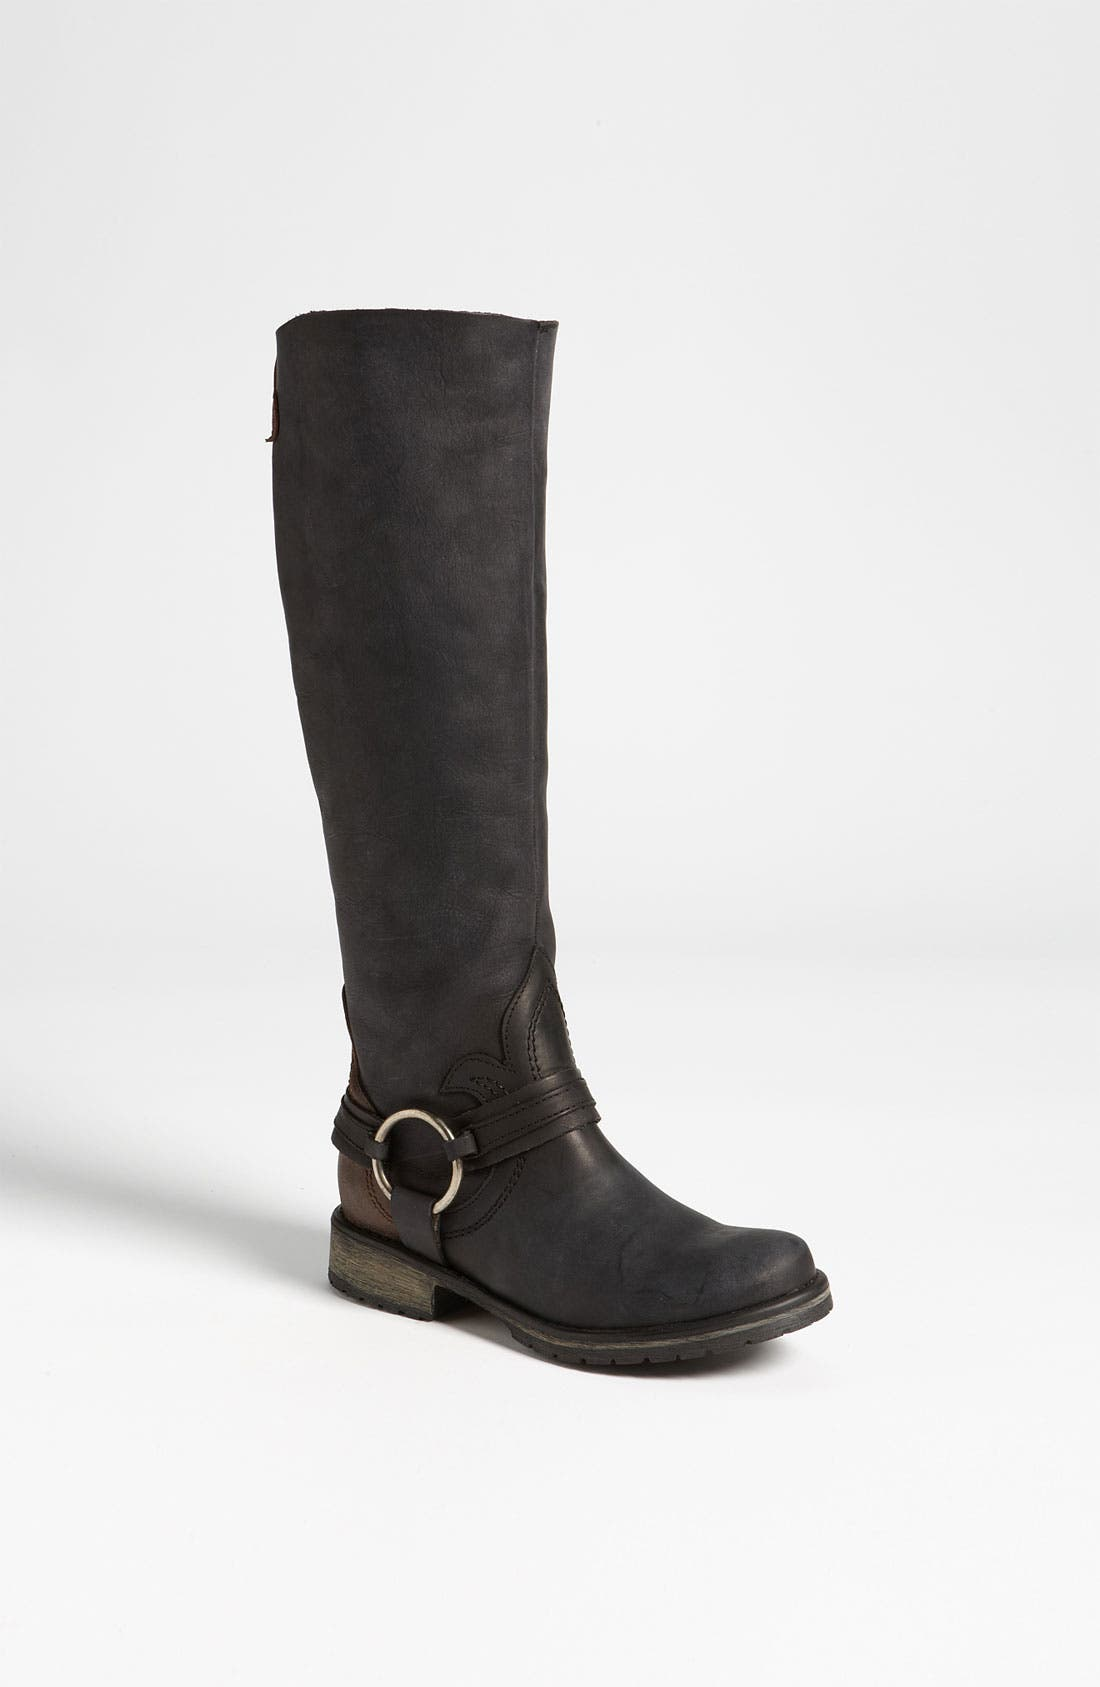 Main Image - Steve Madden 'Judgemnt' Boot